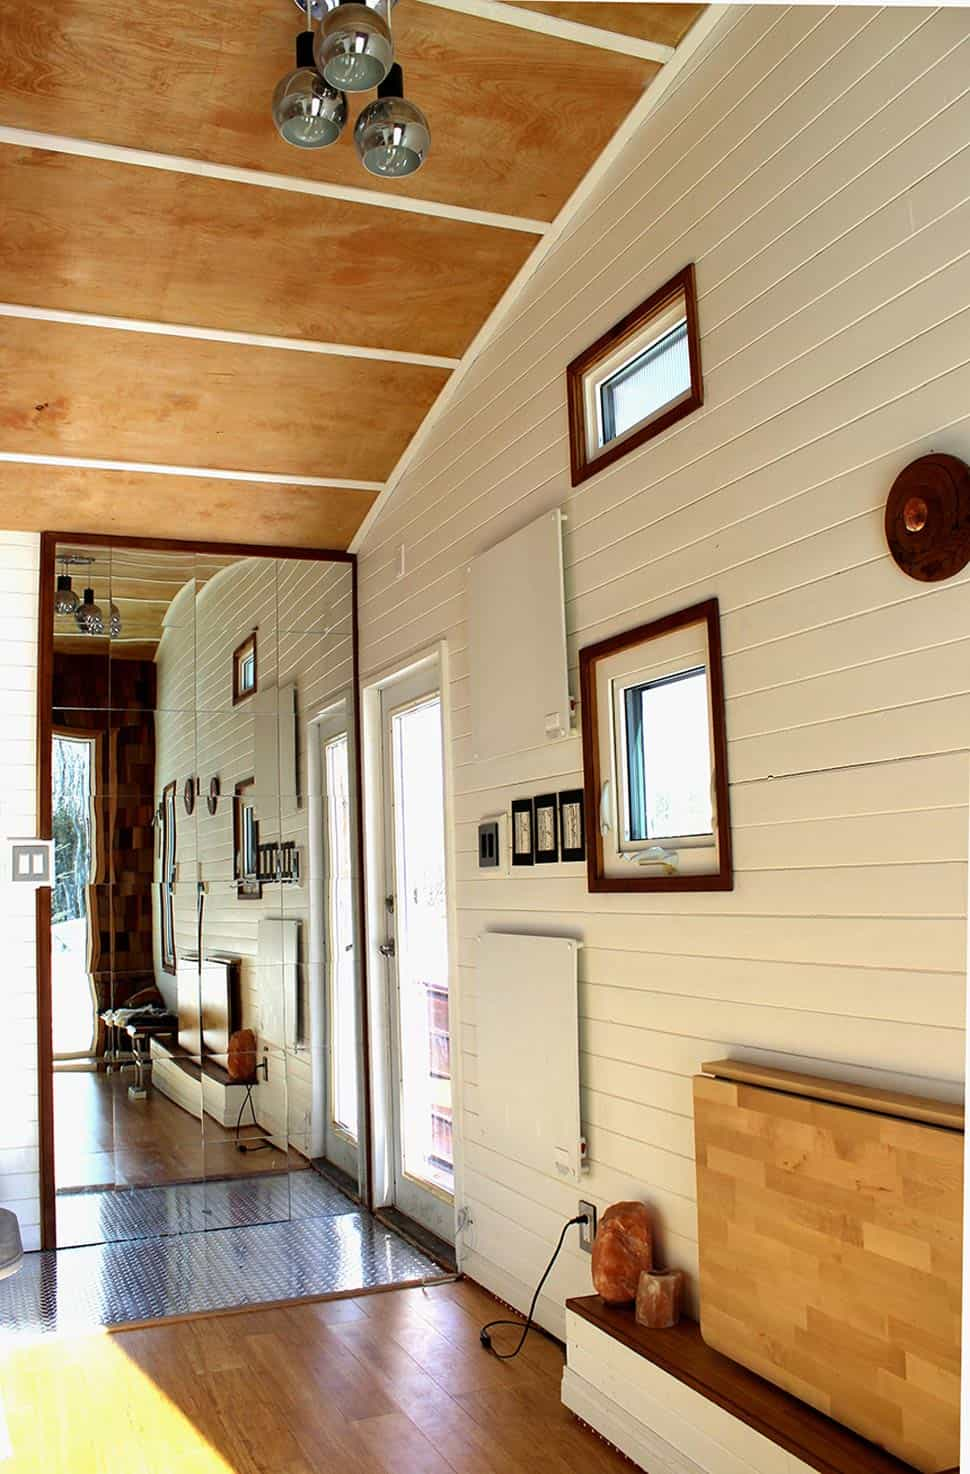 Tiny Home Plans Designs: Tiny House Design For Cold Weather